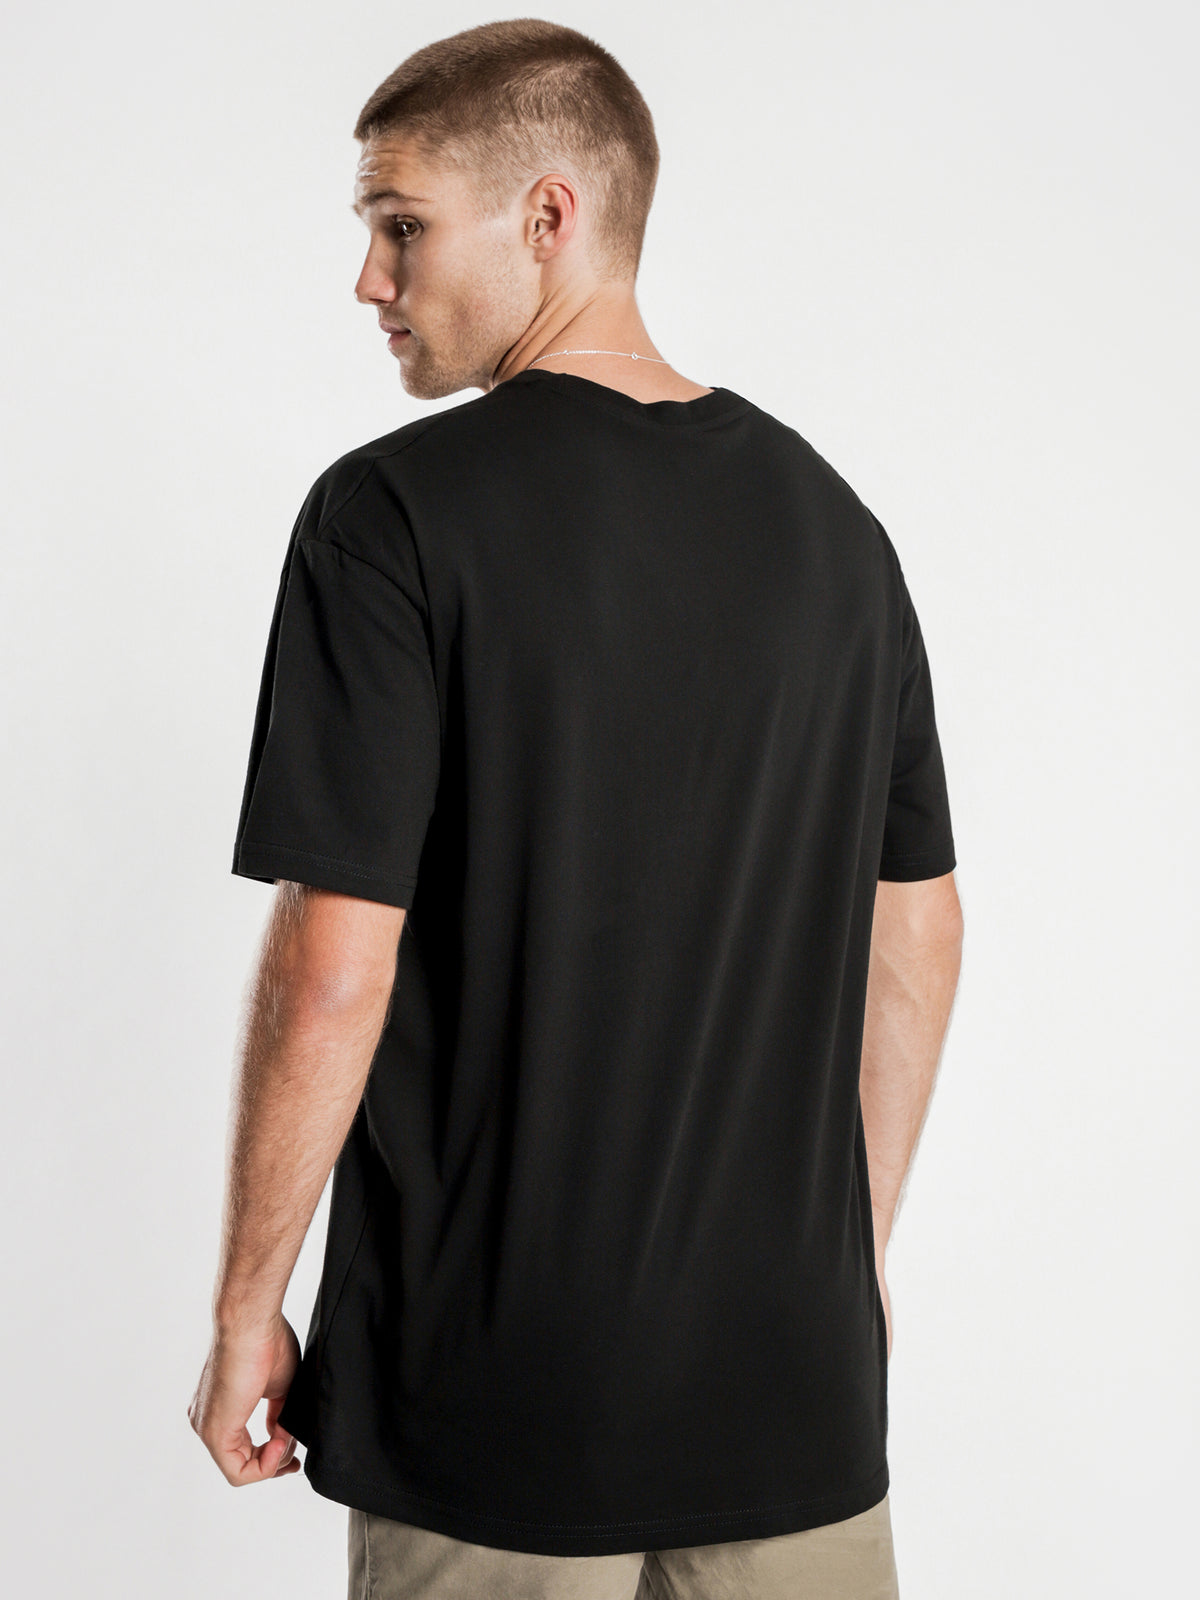 Stock International Short Sleeve T-Shirt in Black